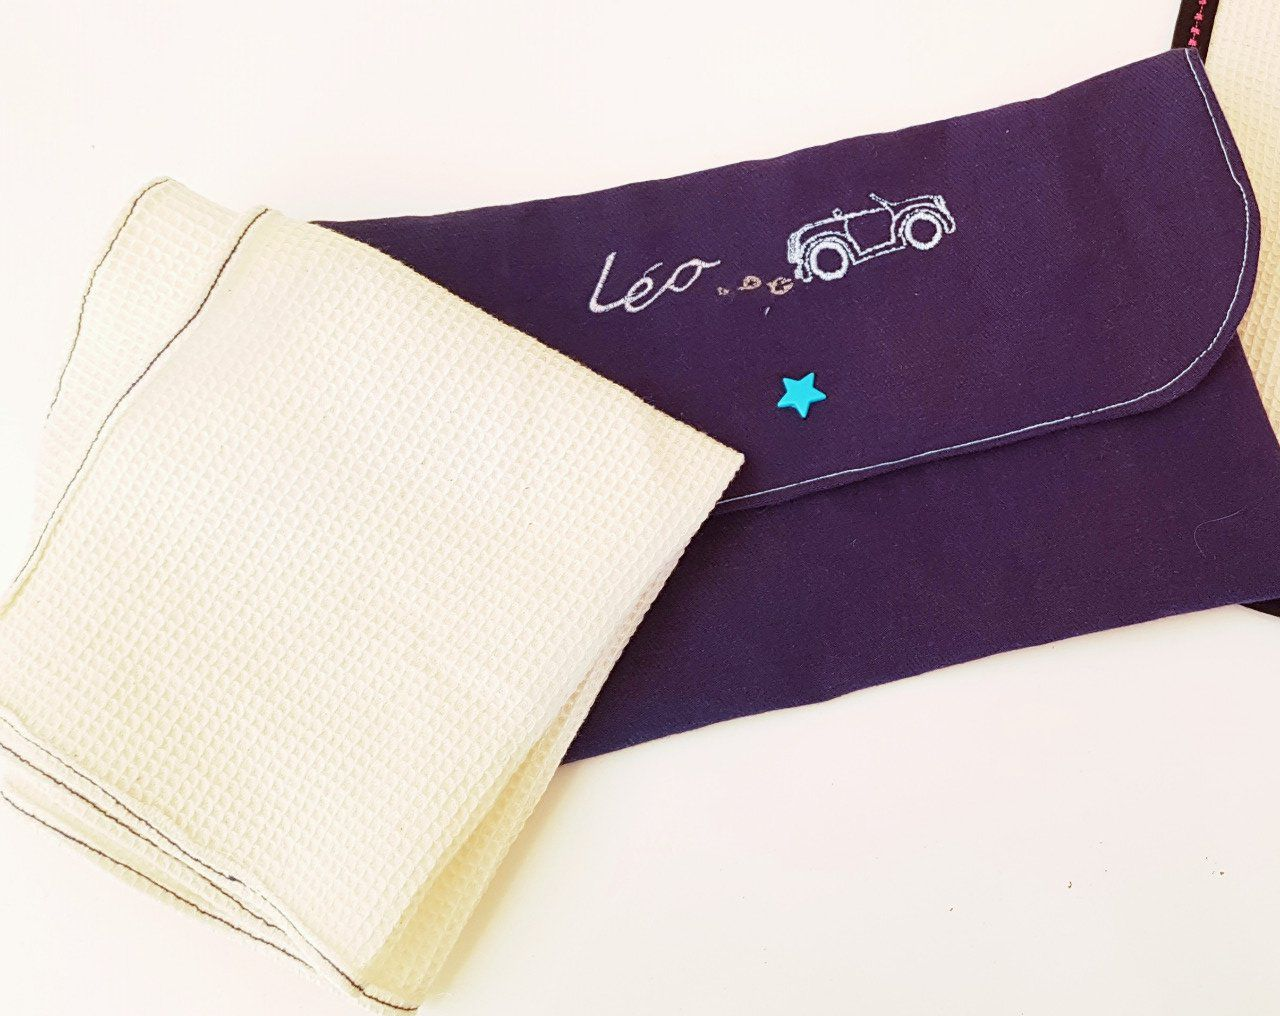 Serviette de table+pochette personalisable 100% coton biologique